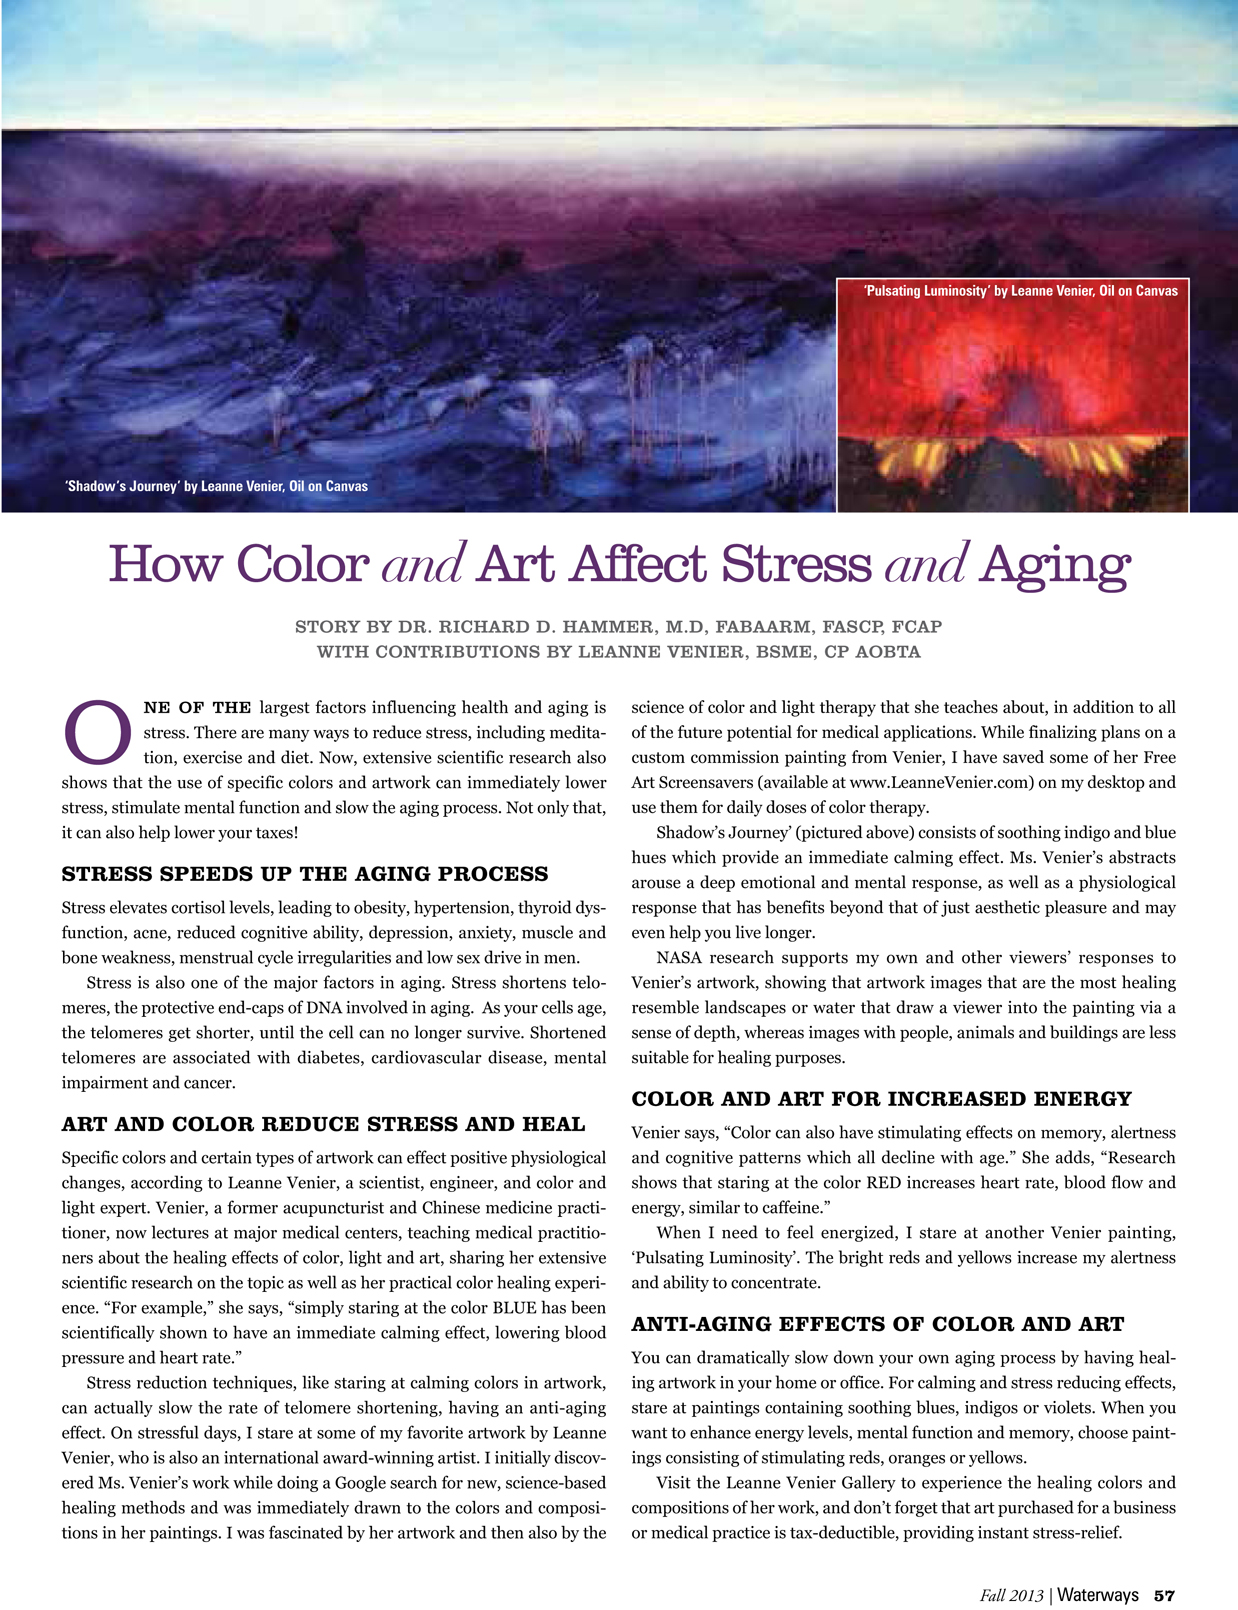 Waterways-Fall-2013-_How_Color_and_Art_affect_Stress_and_Aging-page_57_150_dpi